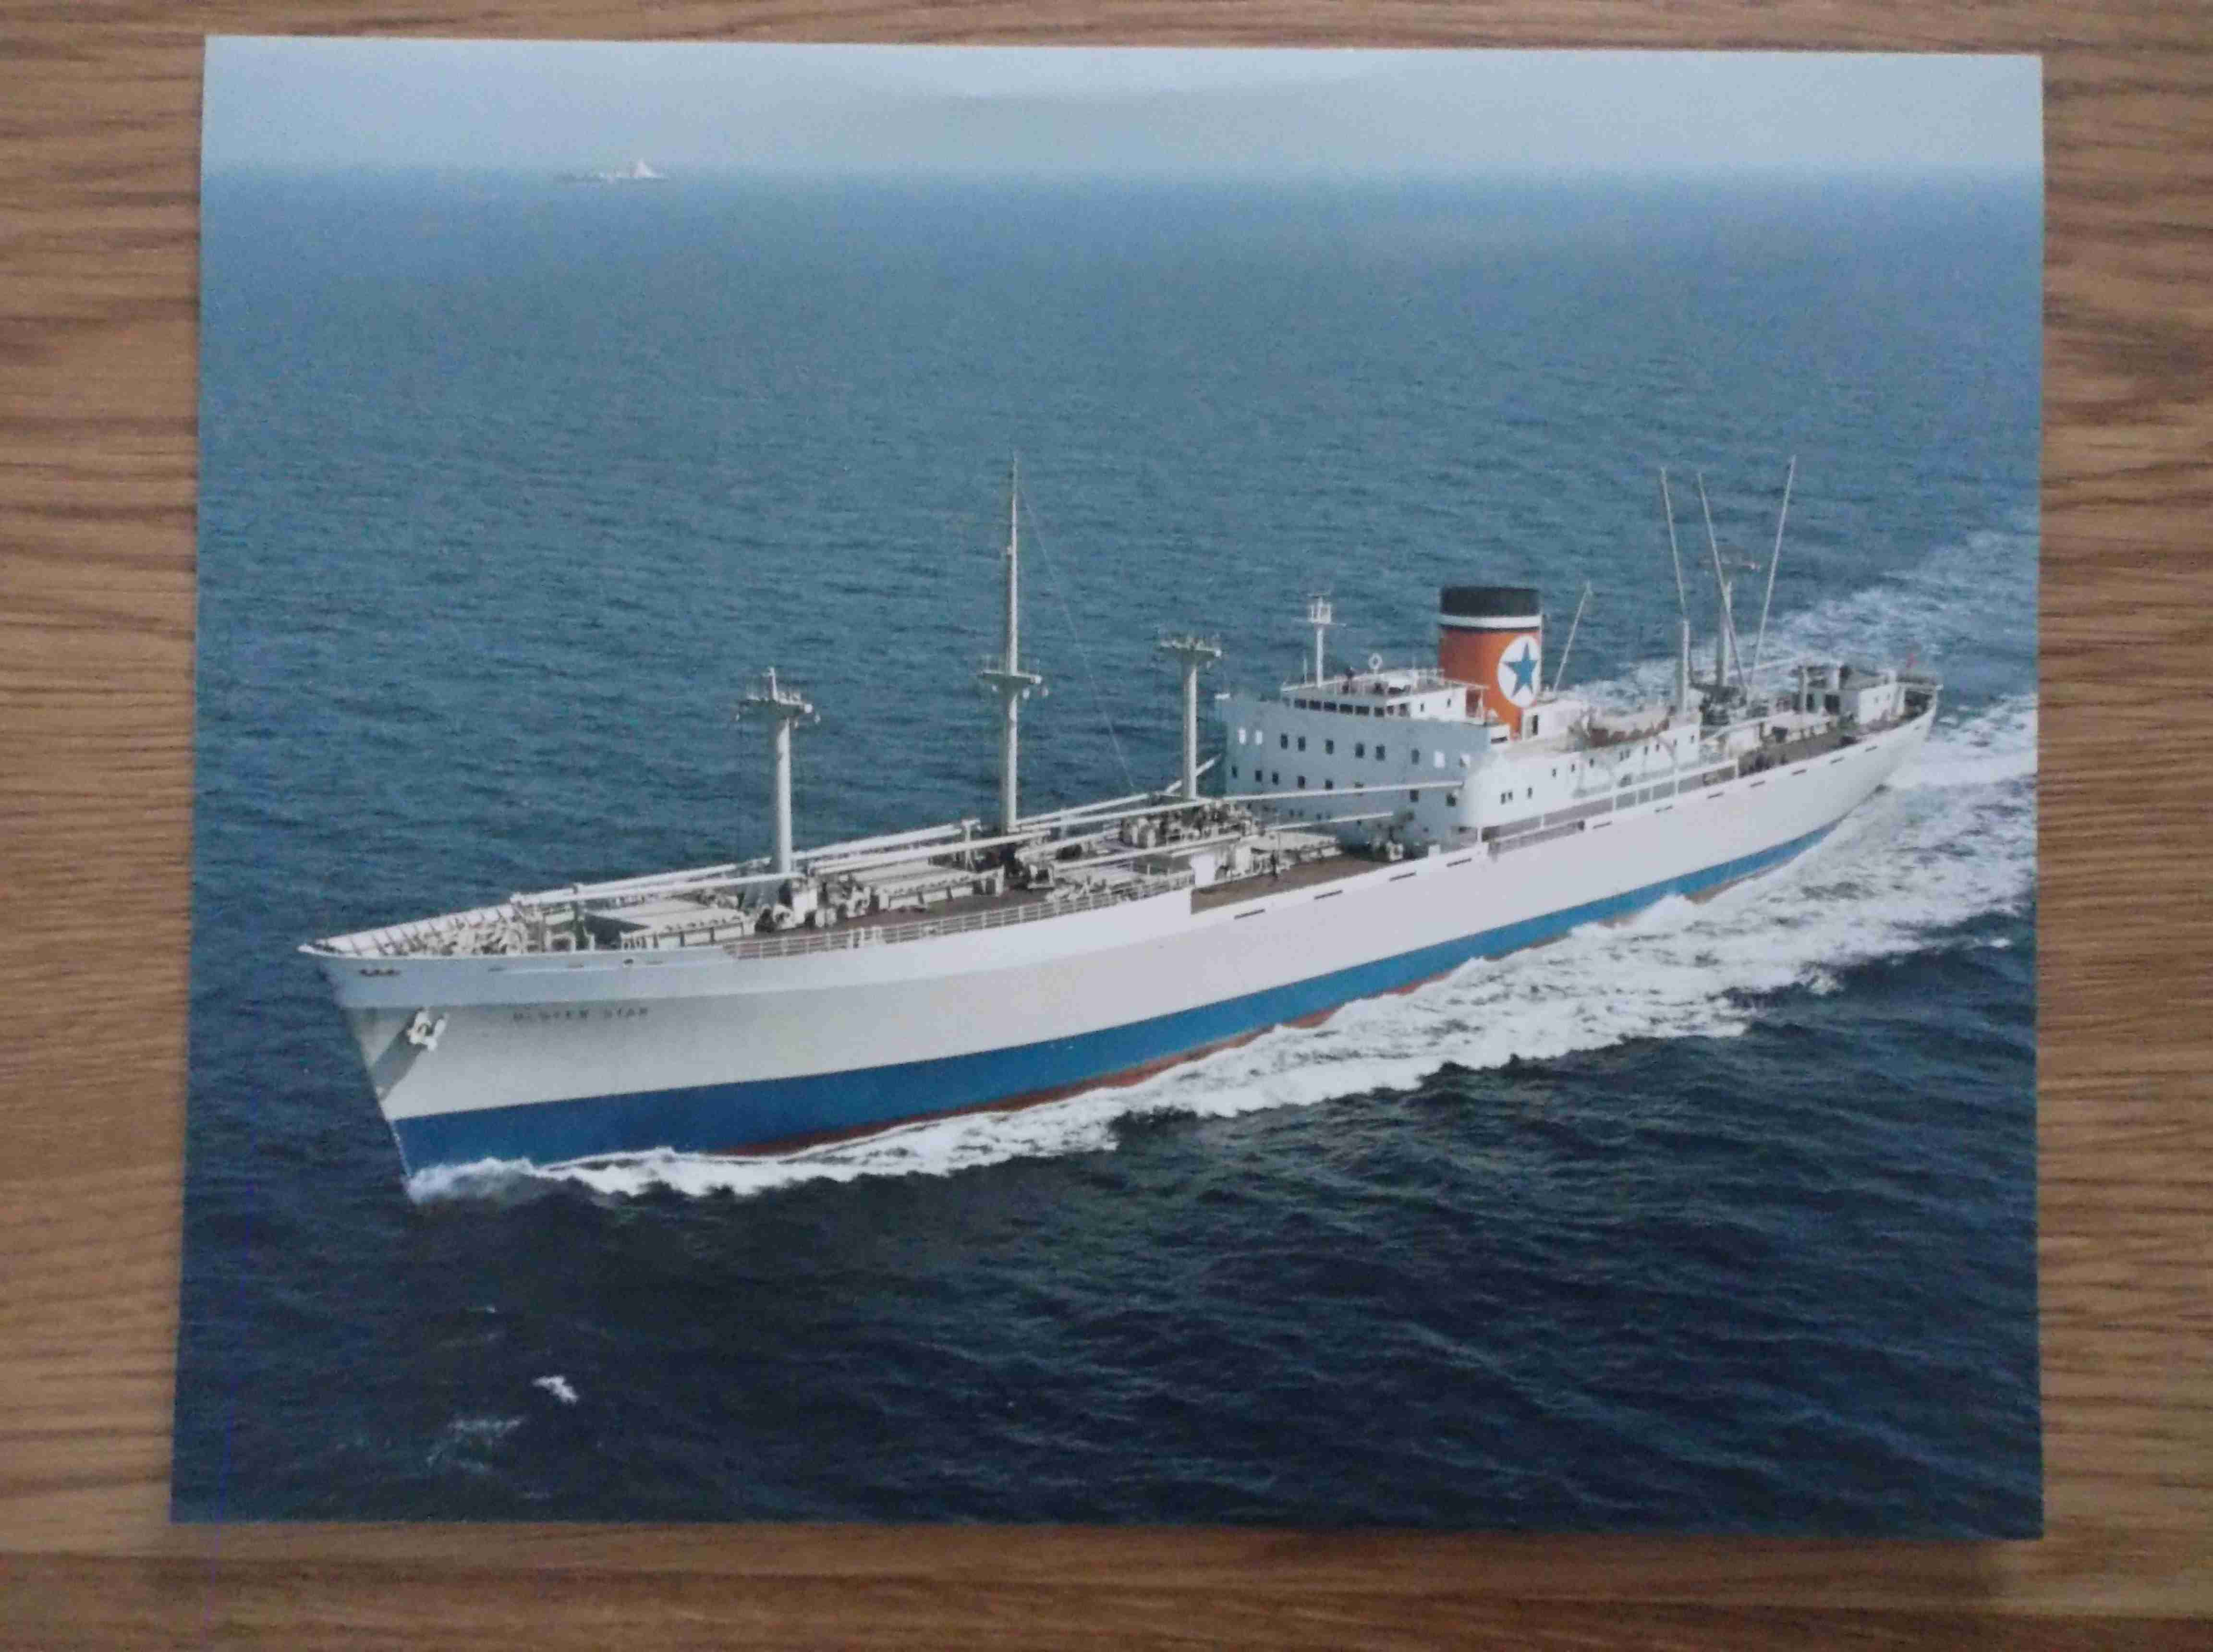 LARGE COLOUR PHOTOGRAPH OF THE BLUE STAR LINE VESSEL THE ULSTER STAR